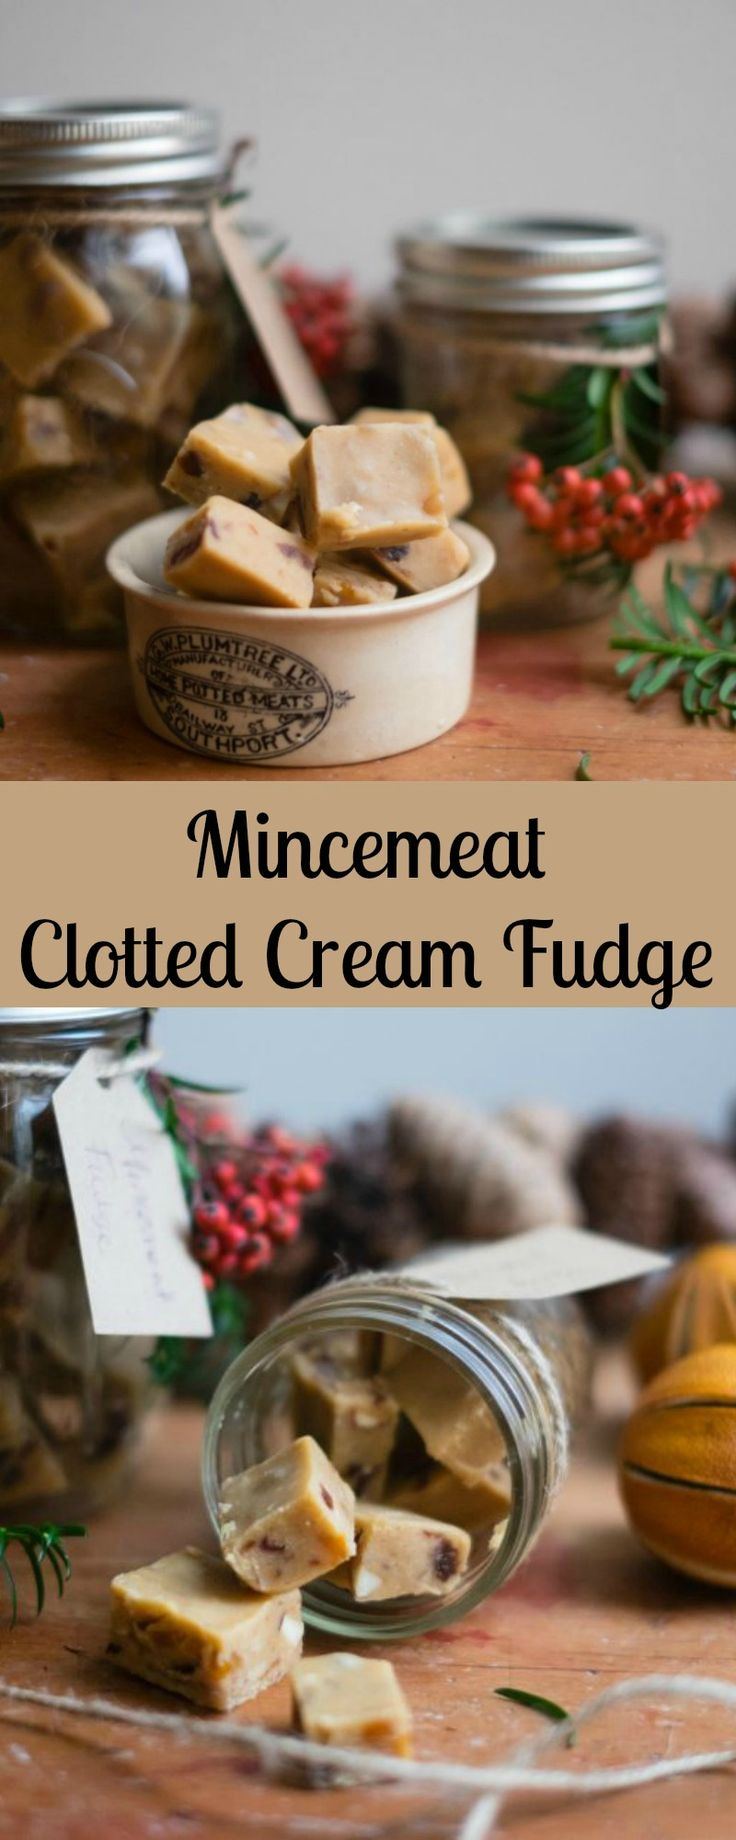 This thoroughly festive mincemeat clotted cream fudge is very easy to make and is a great Christmas gift for friends and family.